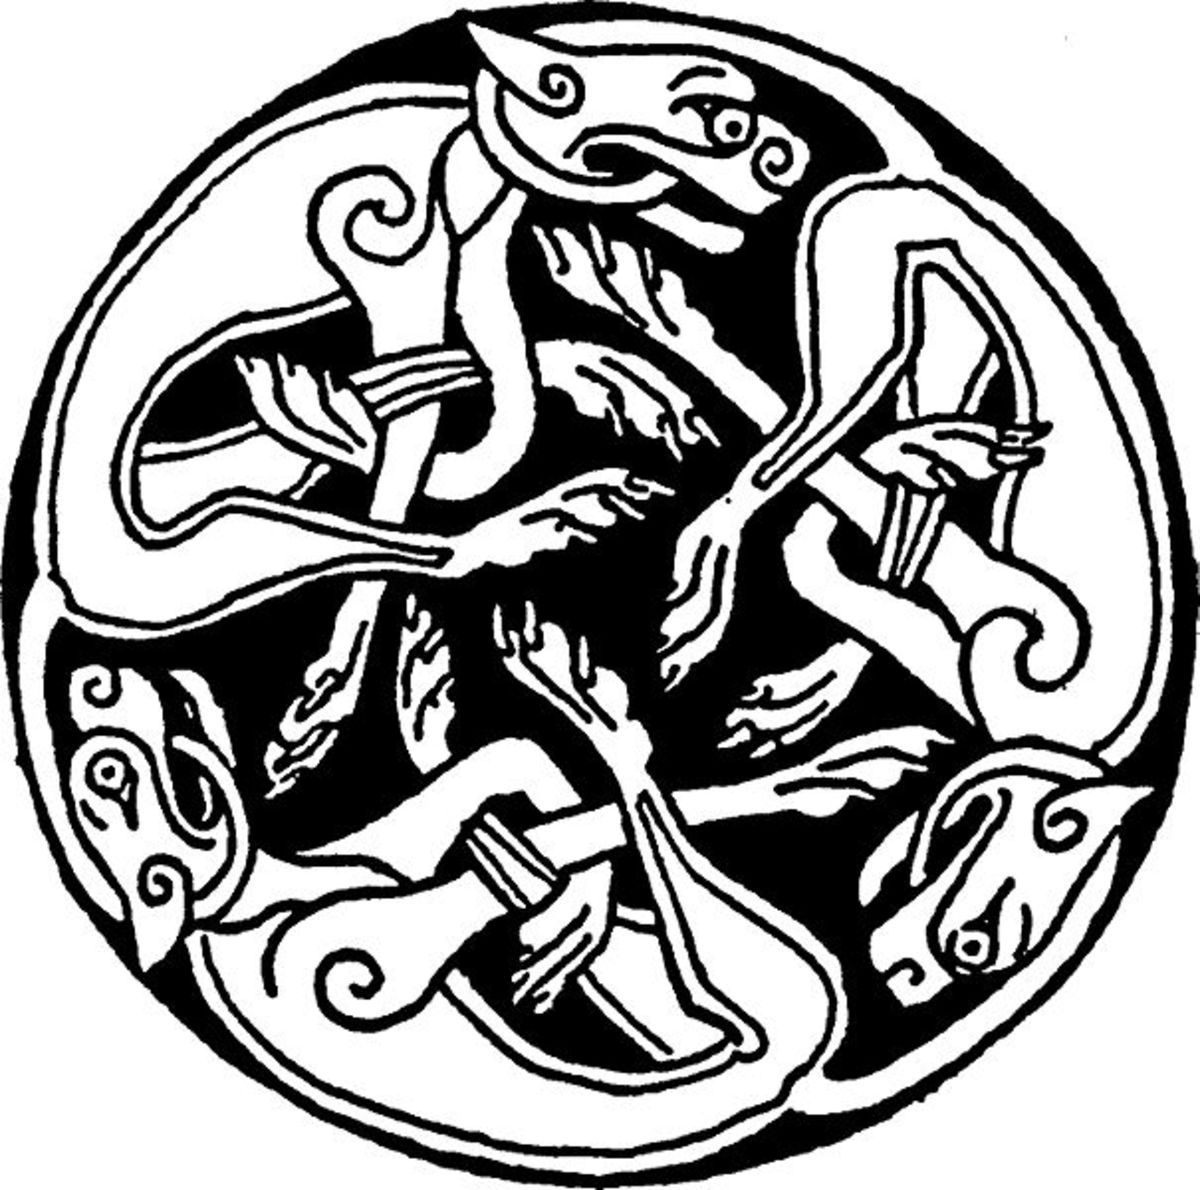 Another Celtic art form, the use of animal motifs in decorating brooches or ornamental earthenware became widespread - and was borrowed extensively by other cultures in the British Isles (Manx-Norse, for example)